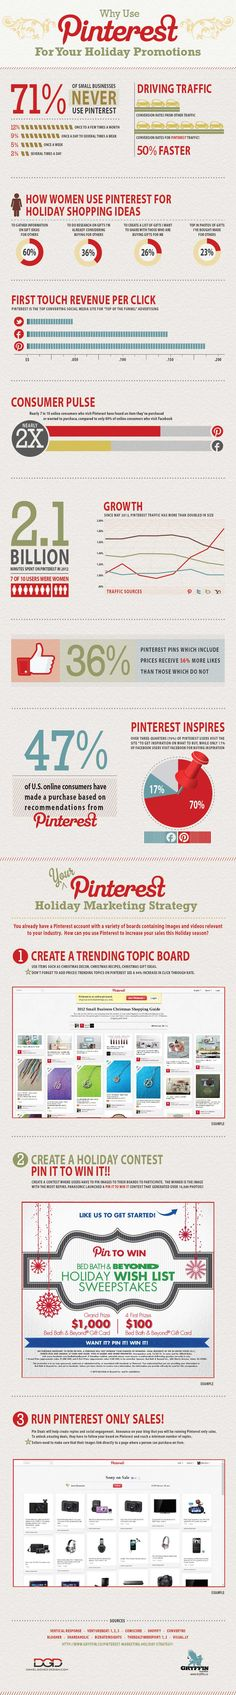 Pinterest Holiday Marketing Tips & Statistics    http://www.gryffin.co/pinterest-marketing-tips-holiday-infographic/